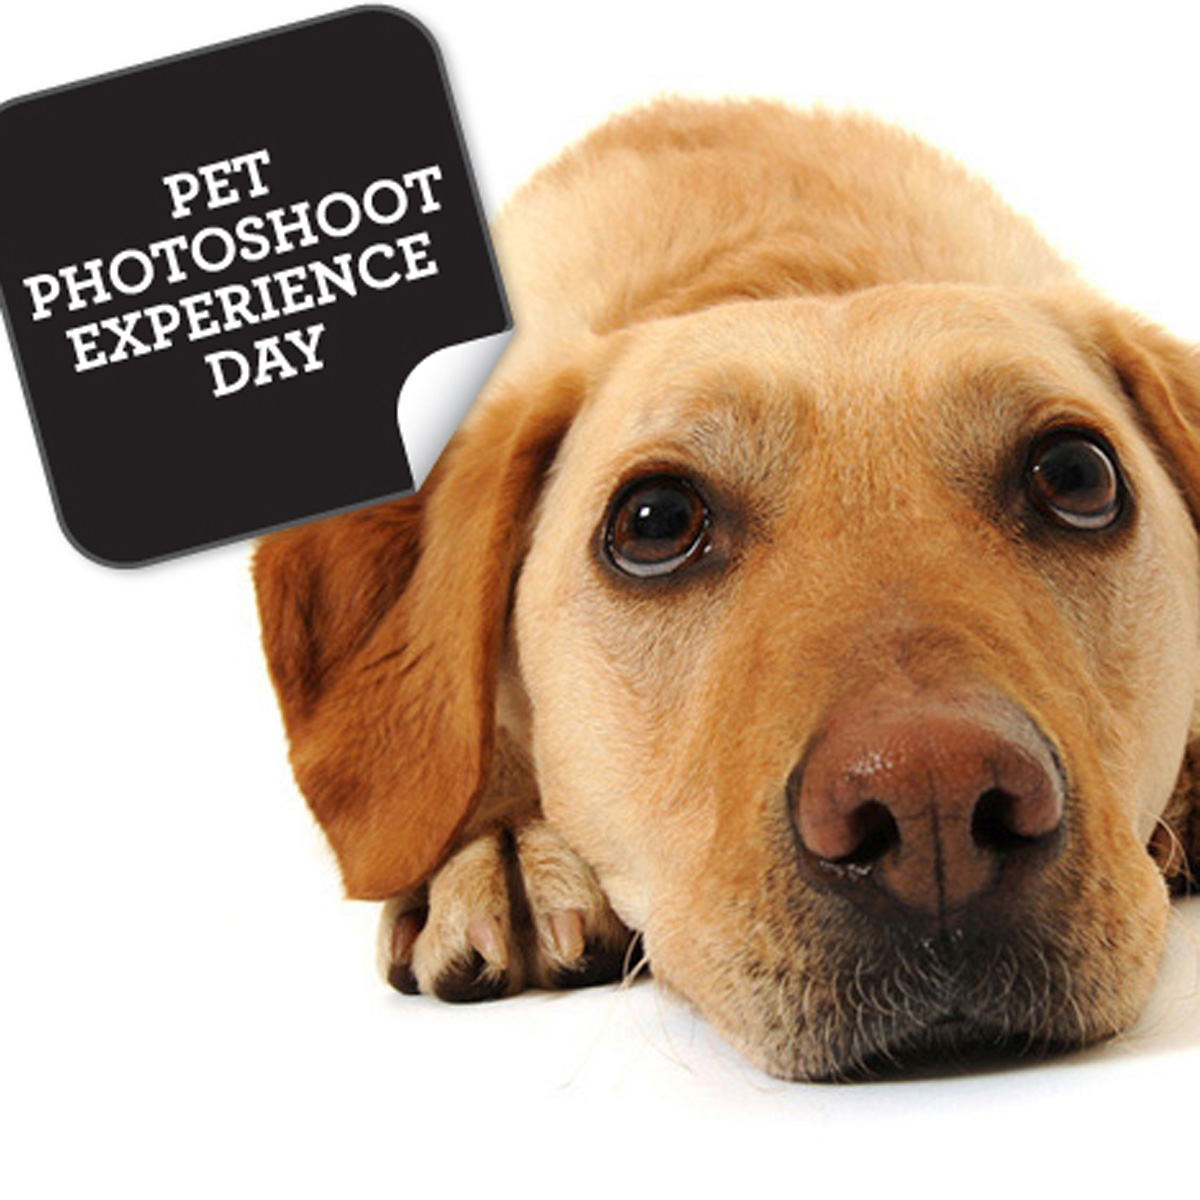 Pet Photoshoot Experience Day